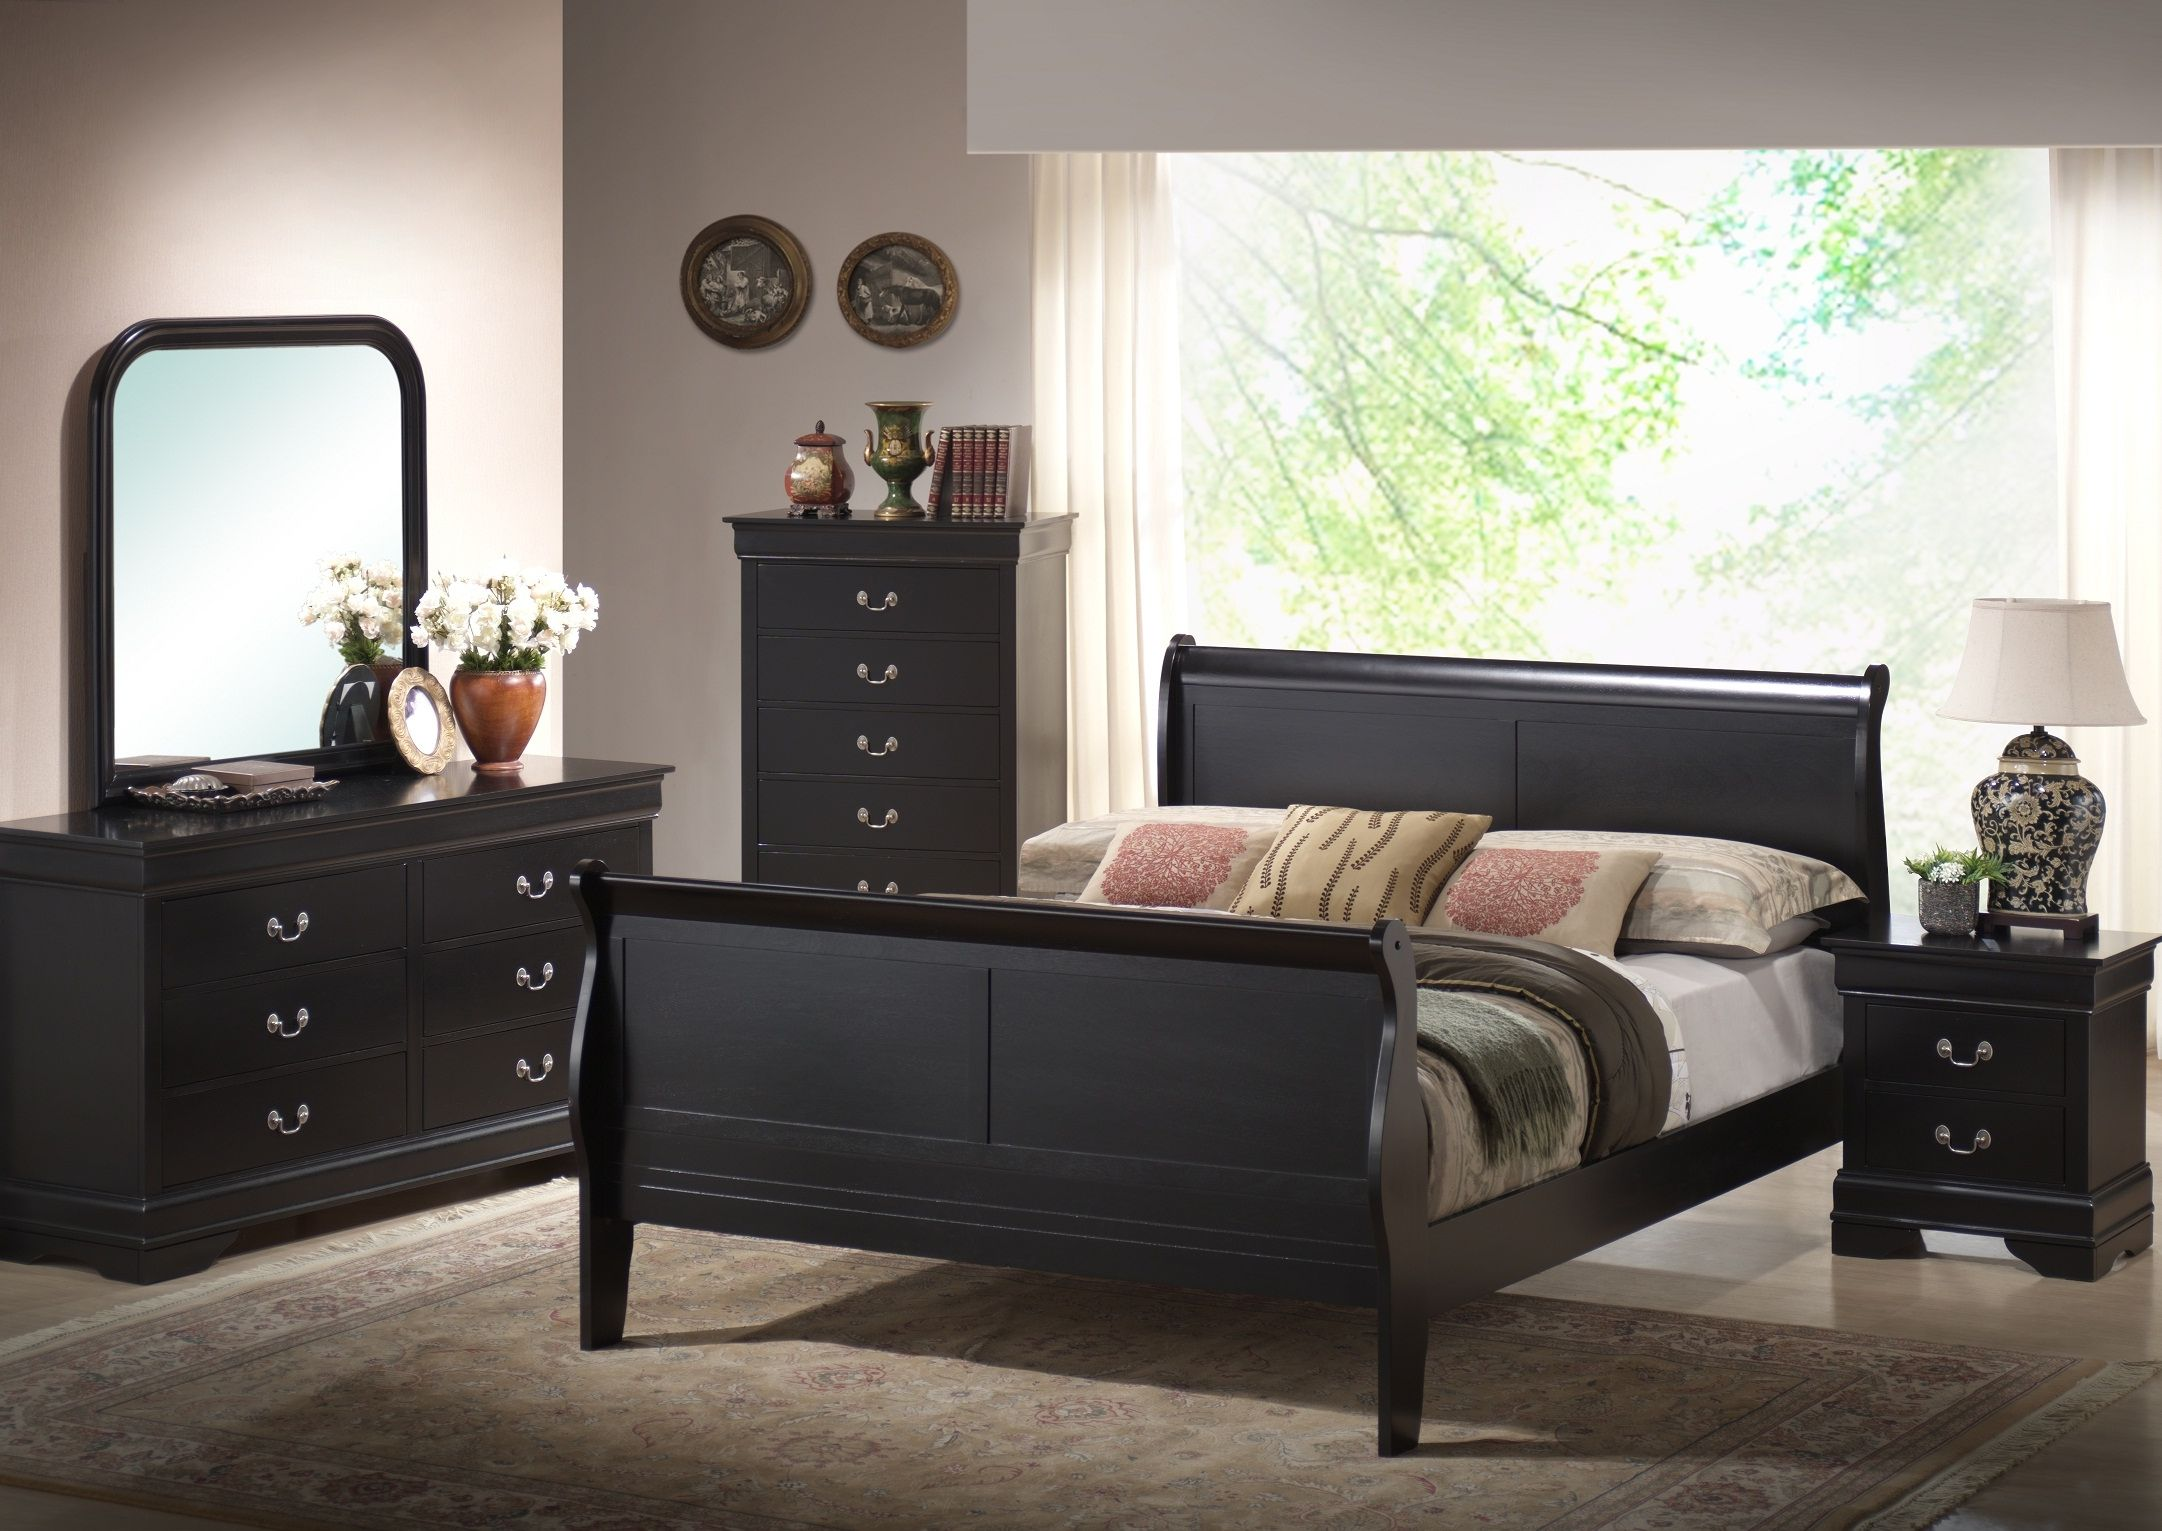 Refine Your Bedroom With The Classic Styling Of The Sleigh Bedroom